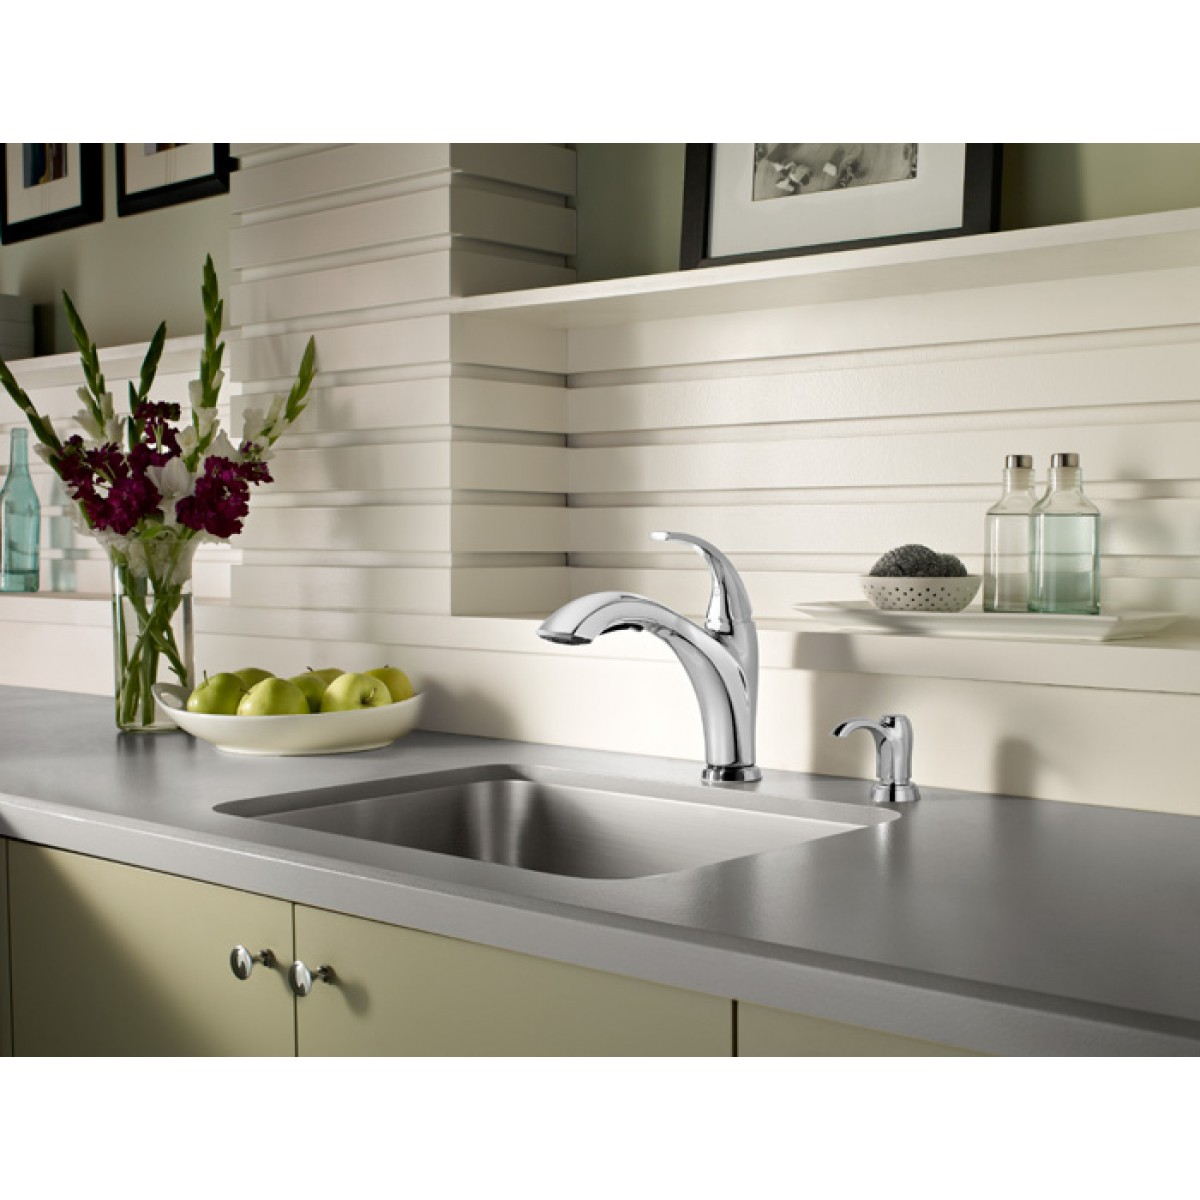 Pfister Selia Lead Free Single Handle Pull Out Chrome Kitchen Faucet With  Soap Dispenser